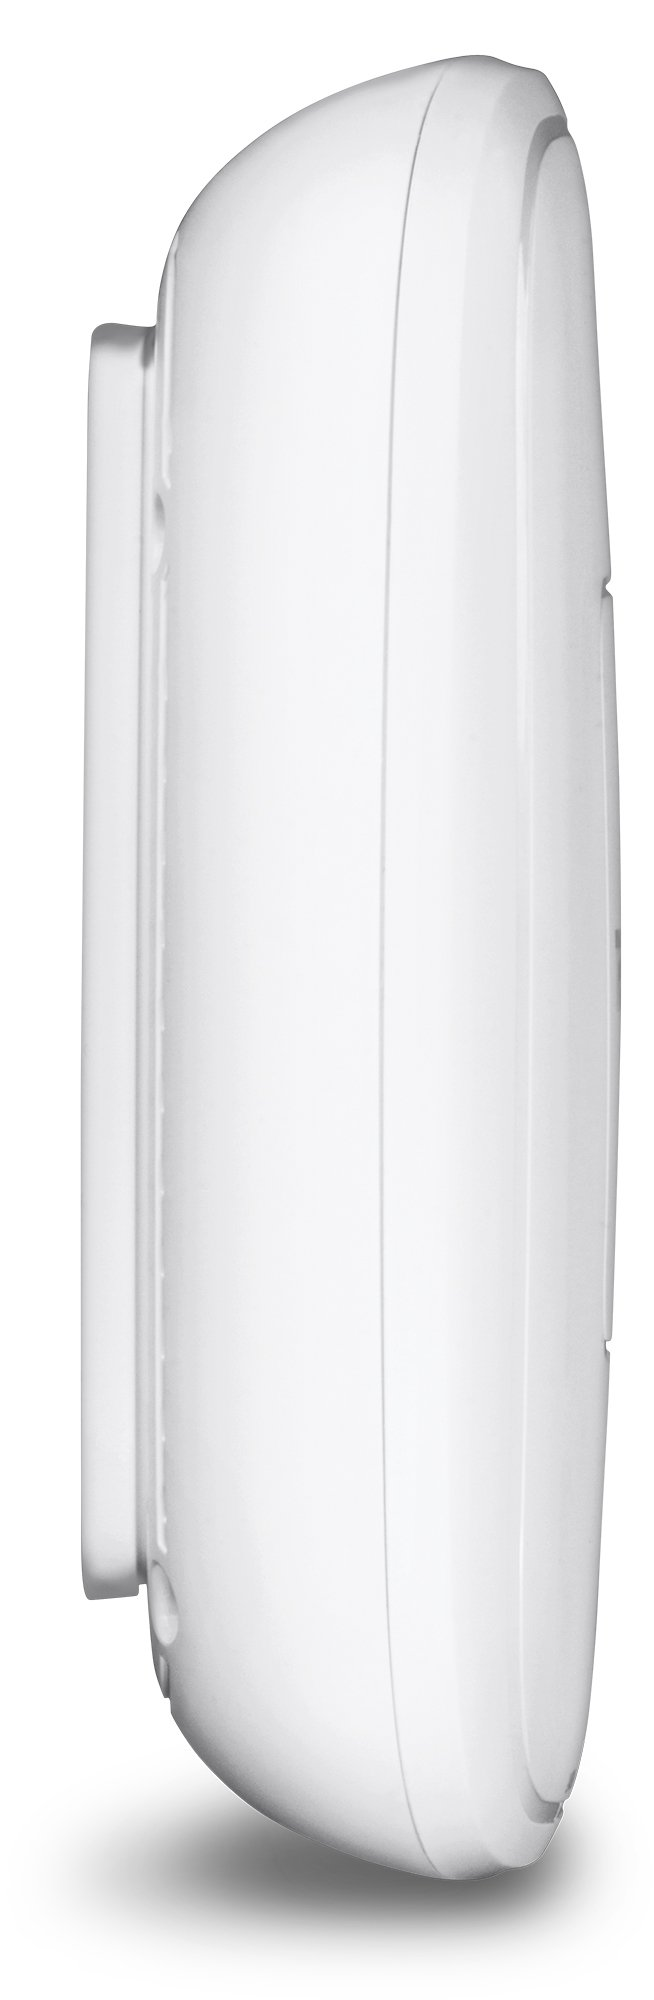 TRENDnet AC1200 Dual Band PoE Access Point, 867 Mbps WiFi AC+ 300 Mbps WiFi N Bands, Client, WDS, AP, WDS Bridge, WDS Station, Repeater Modes, Easy Install, TEW-821DAP by TRENDnet (Image #5)